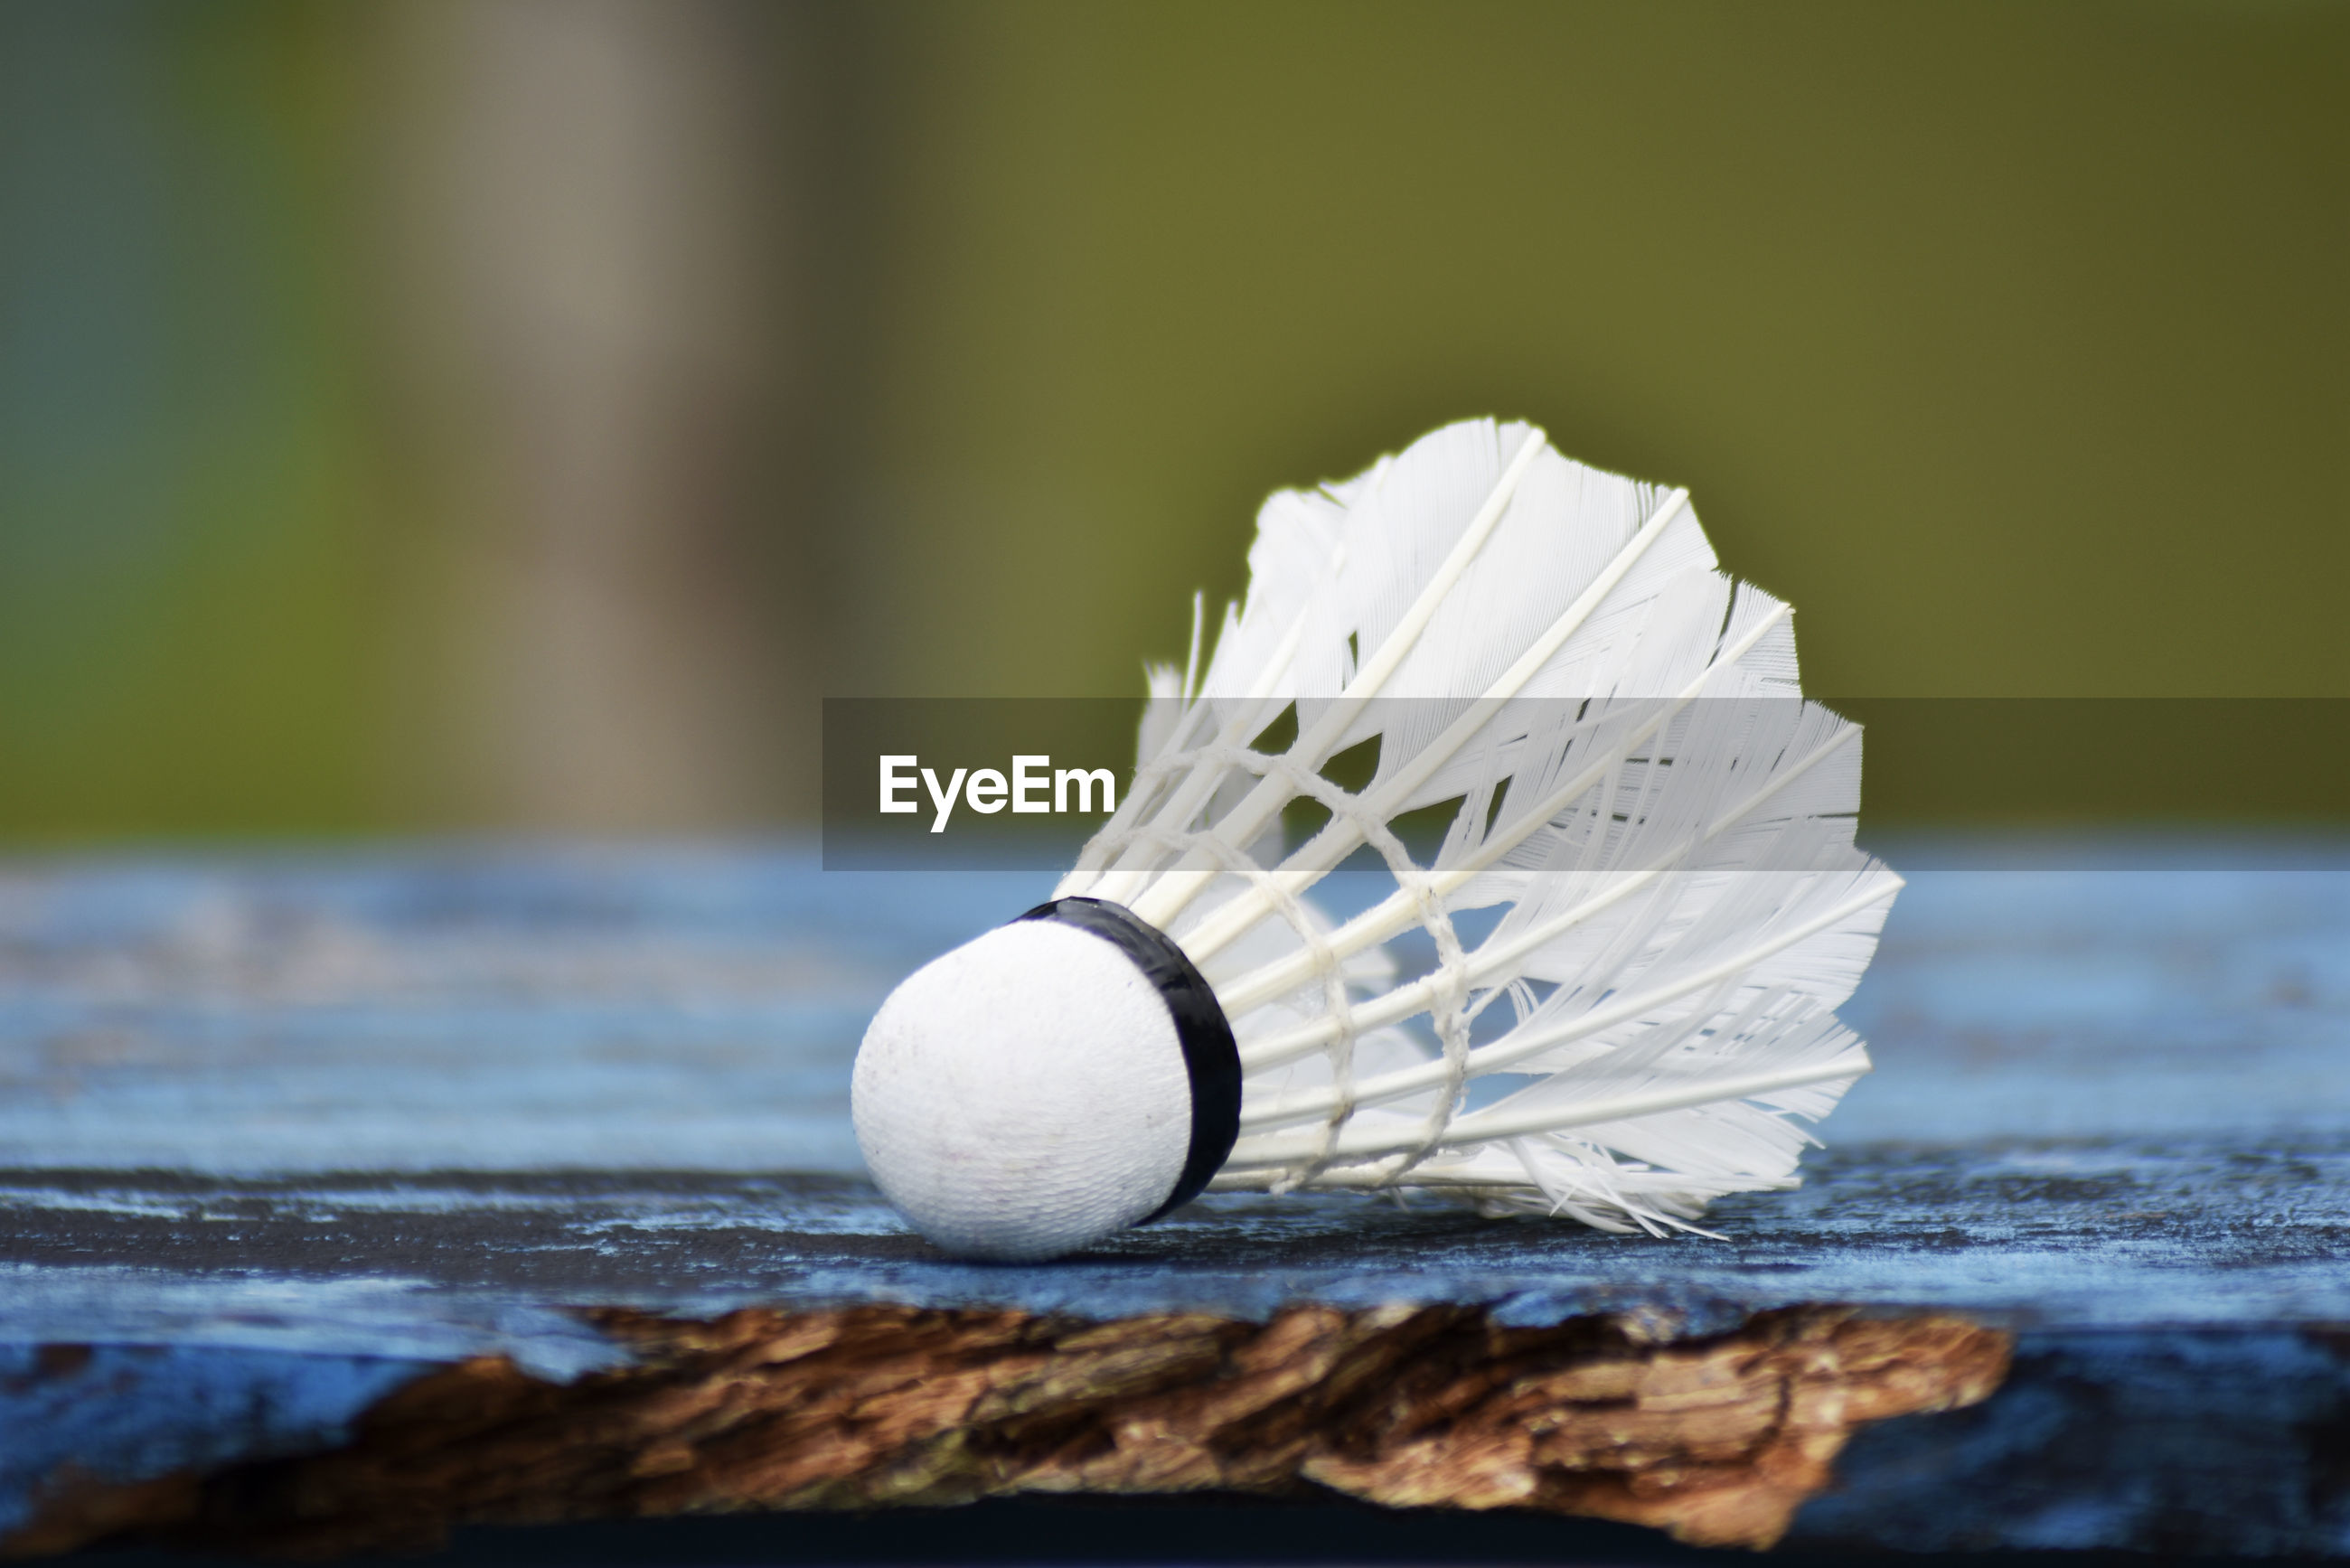 Badminton ball on a wooden table